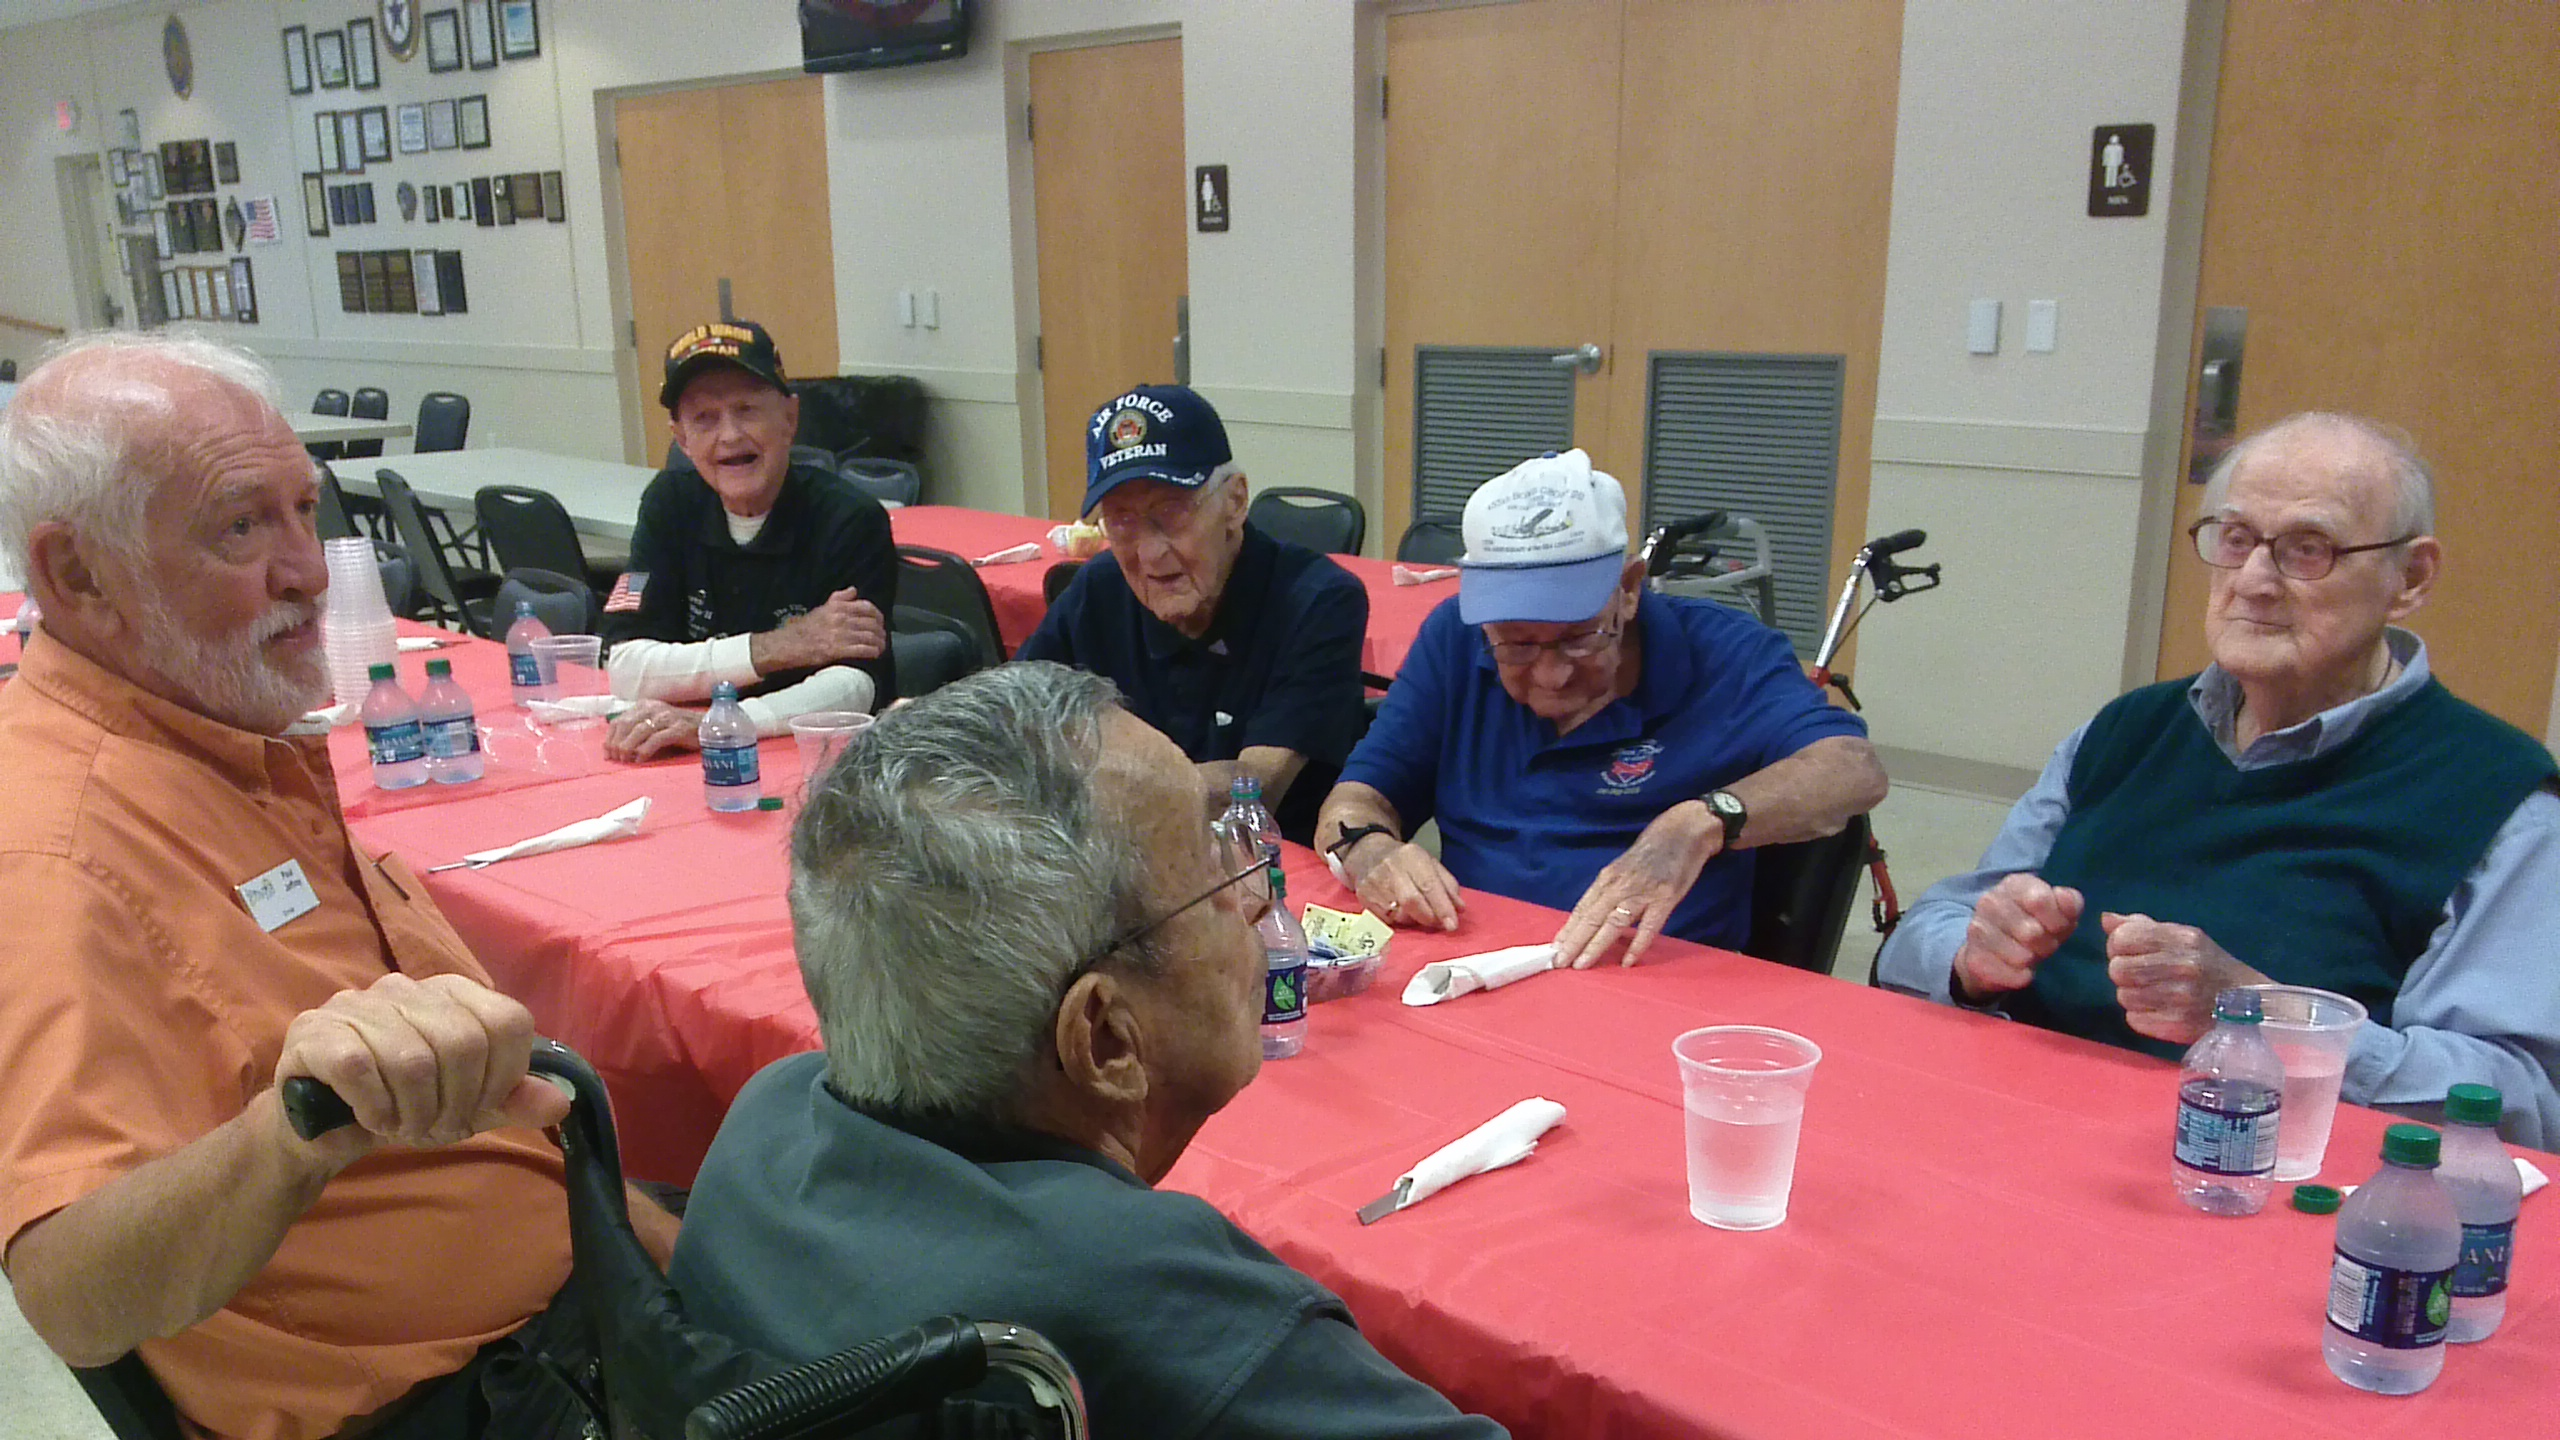 http://www.florida-legion.com/WW2lunch.JPG